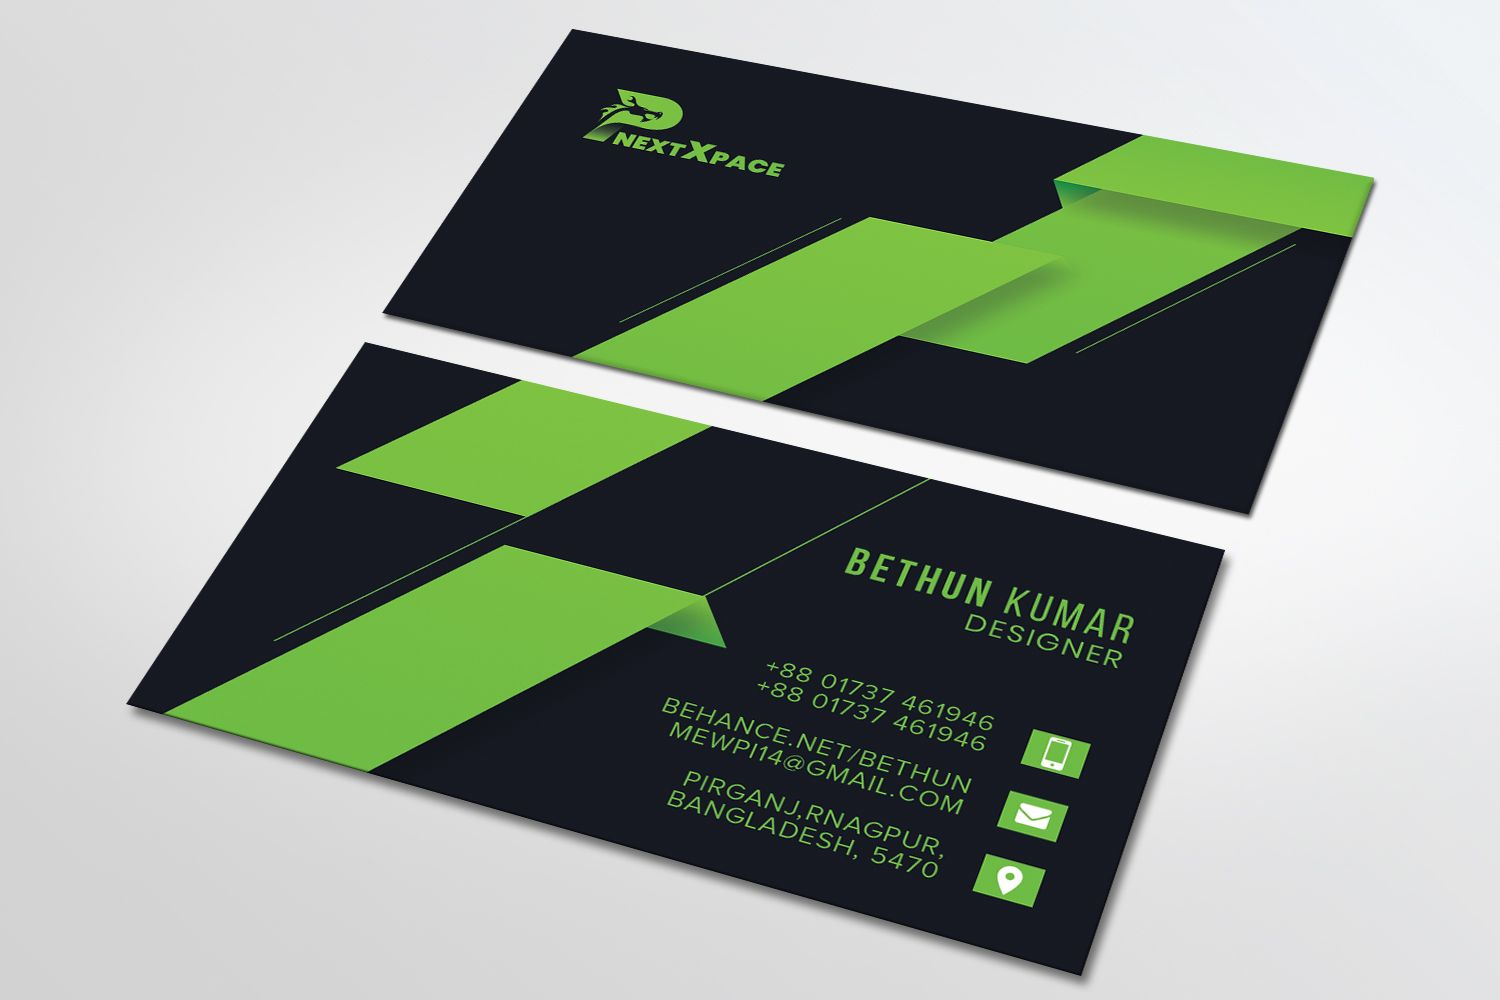 I Will Do Business Card Business Card Design Professional Business Card Design Double Sided Business Cards Business Card Design Letterpress Business Cards